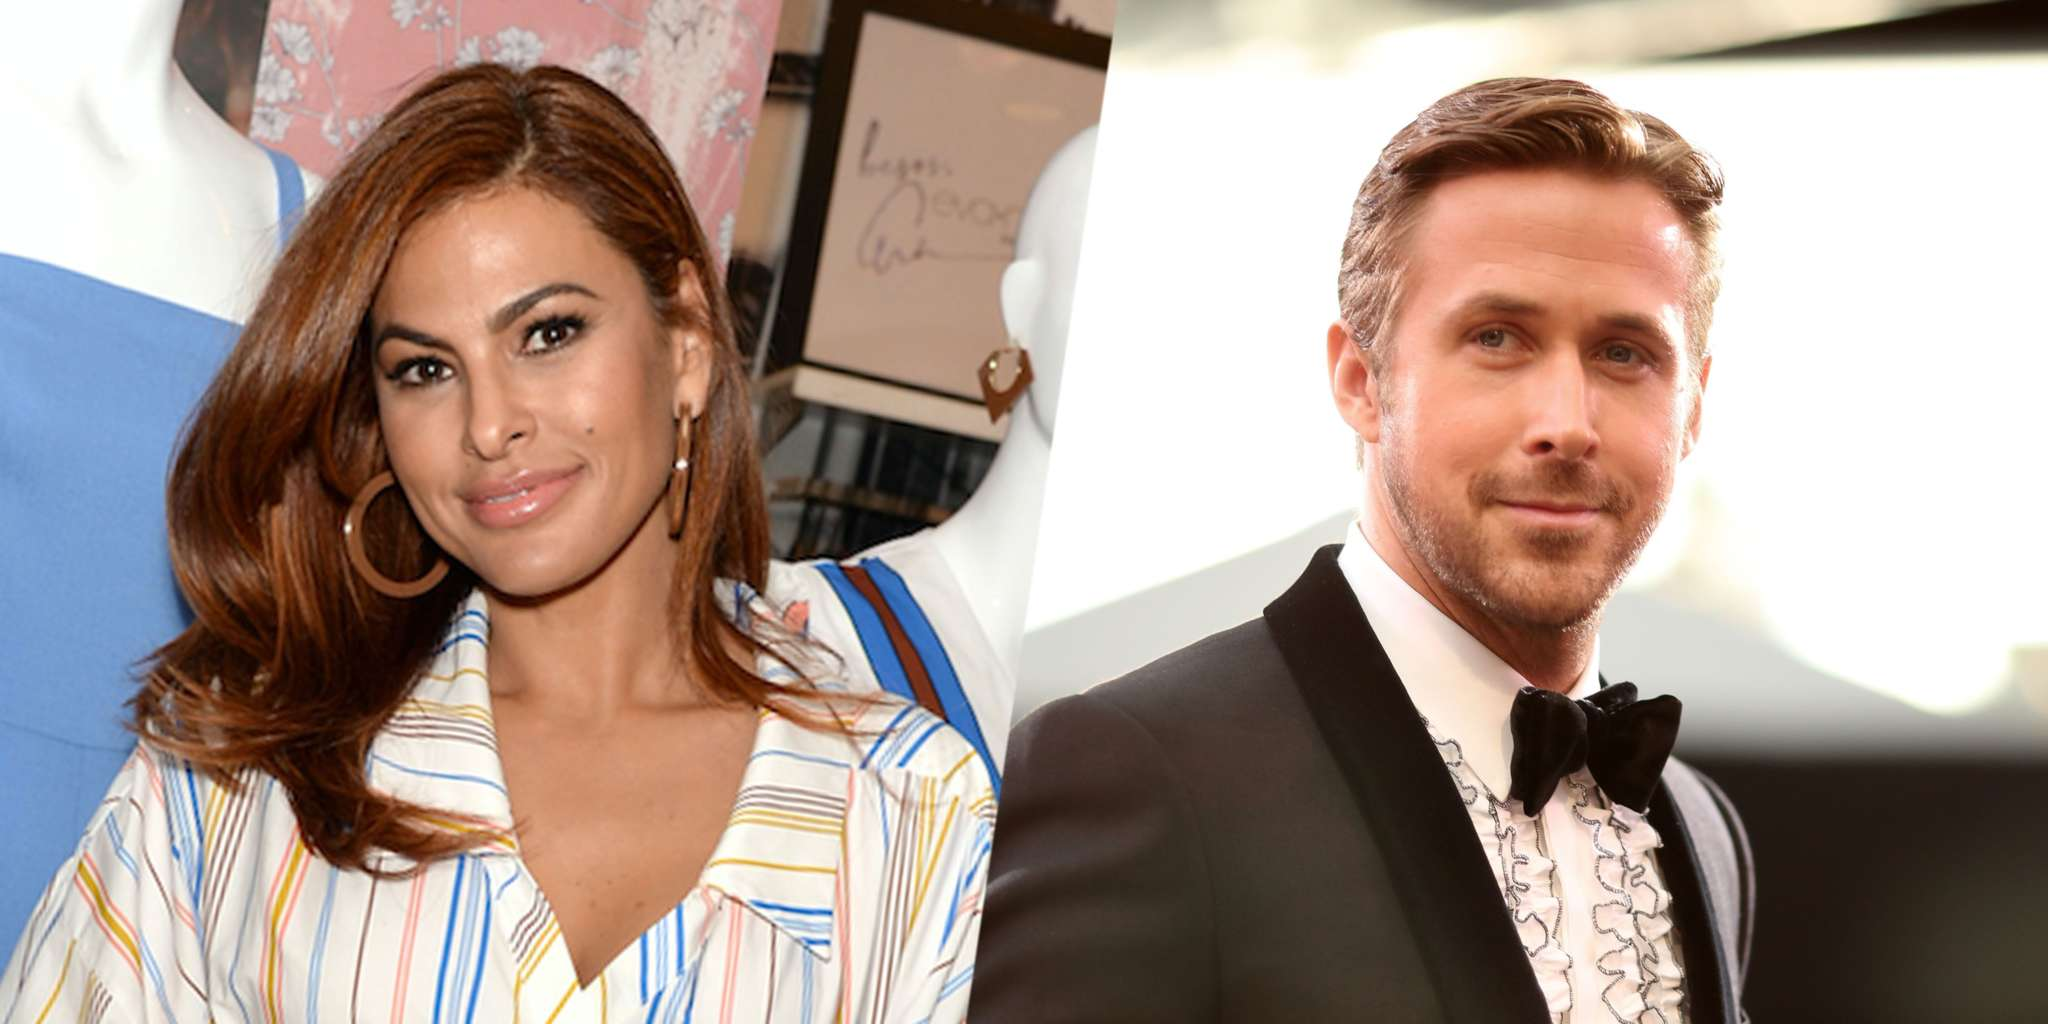 Eva Mendes Explains Why She Won't Share New Photos of Ryan Gosling